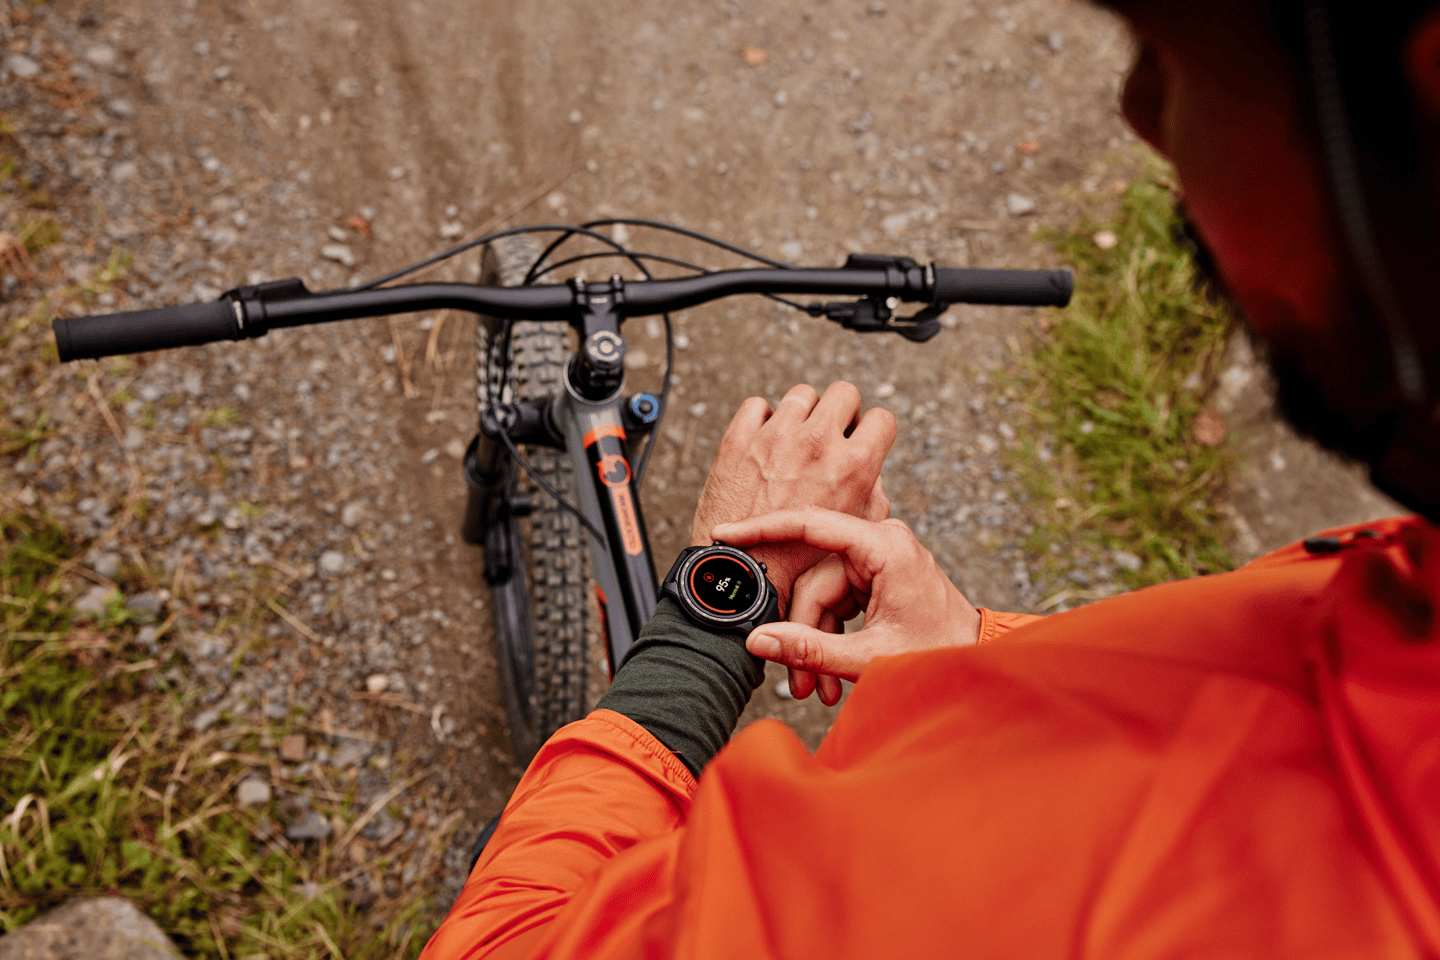 The TicWatch Pro 3 Ultra GPS boasts military-grade toughness and smooth, fast performance